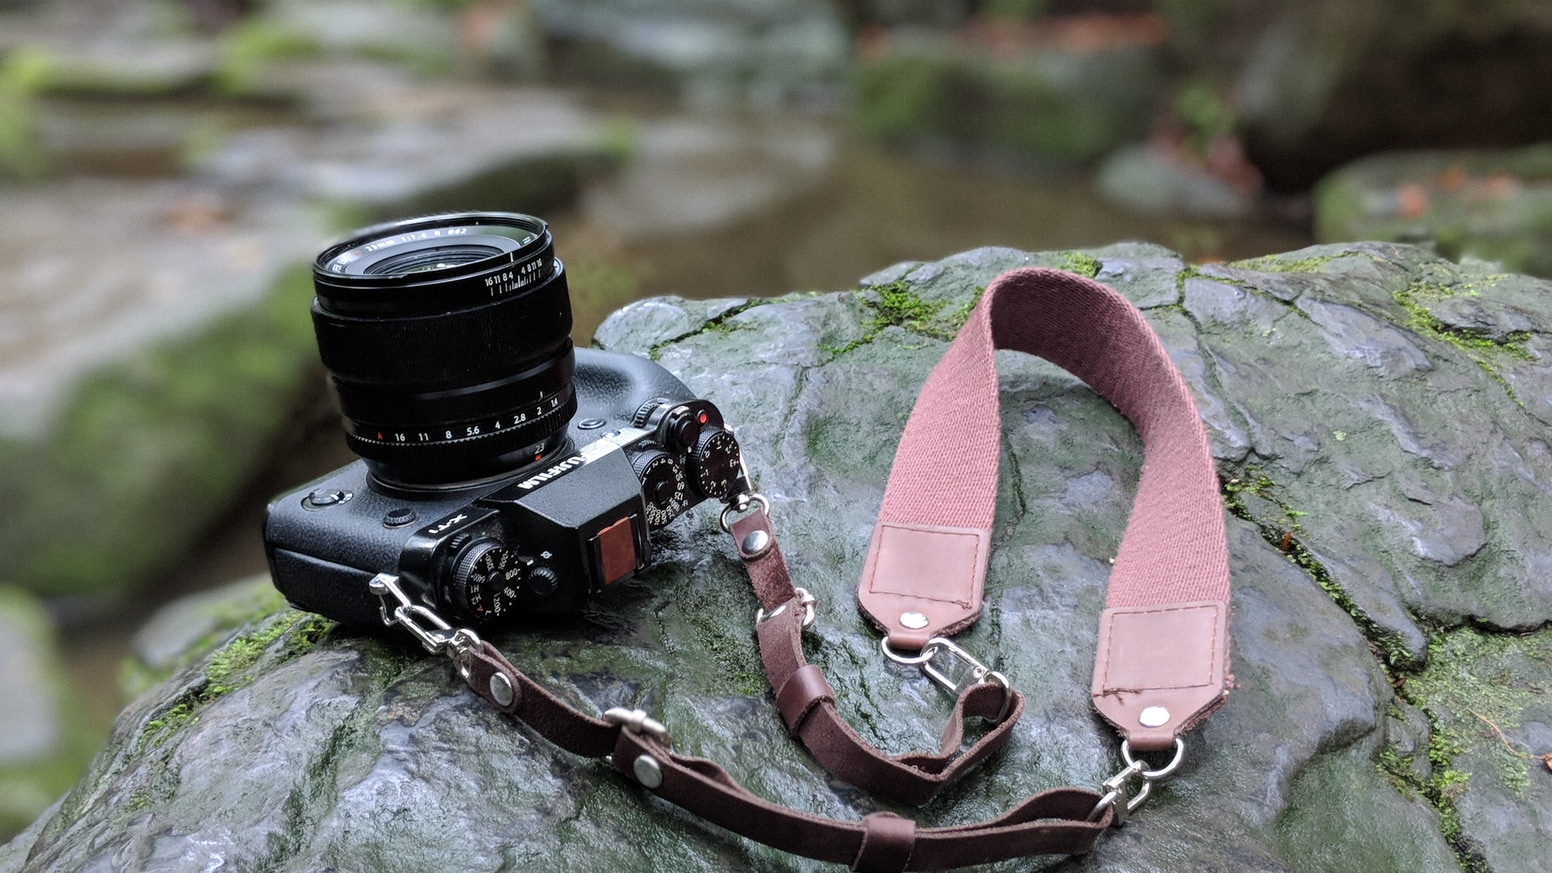 The only camera strap you need, and the last one you'll ever buy. Handcrafted, beautiful, versatile, and guaranteed for life.